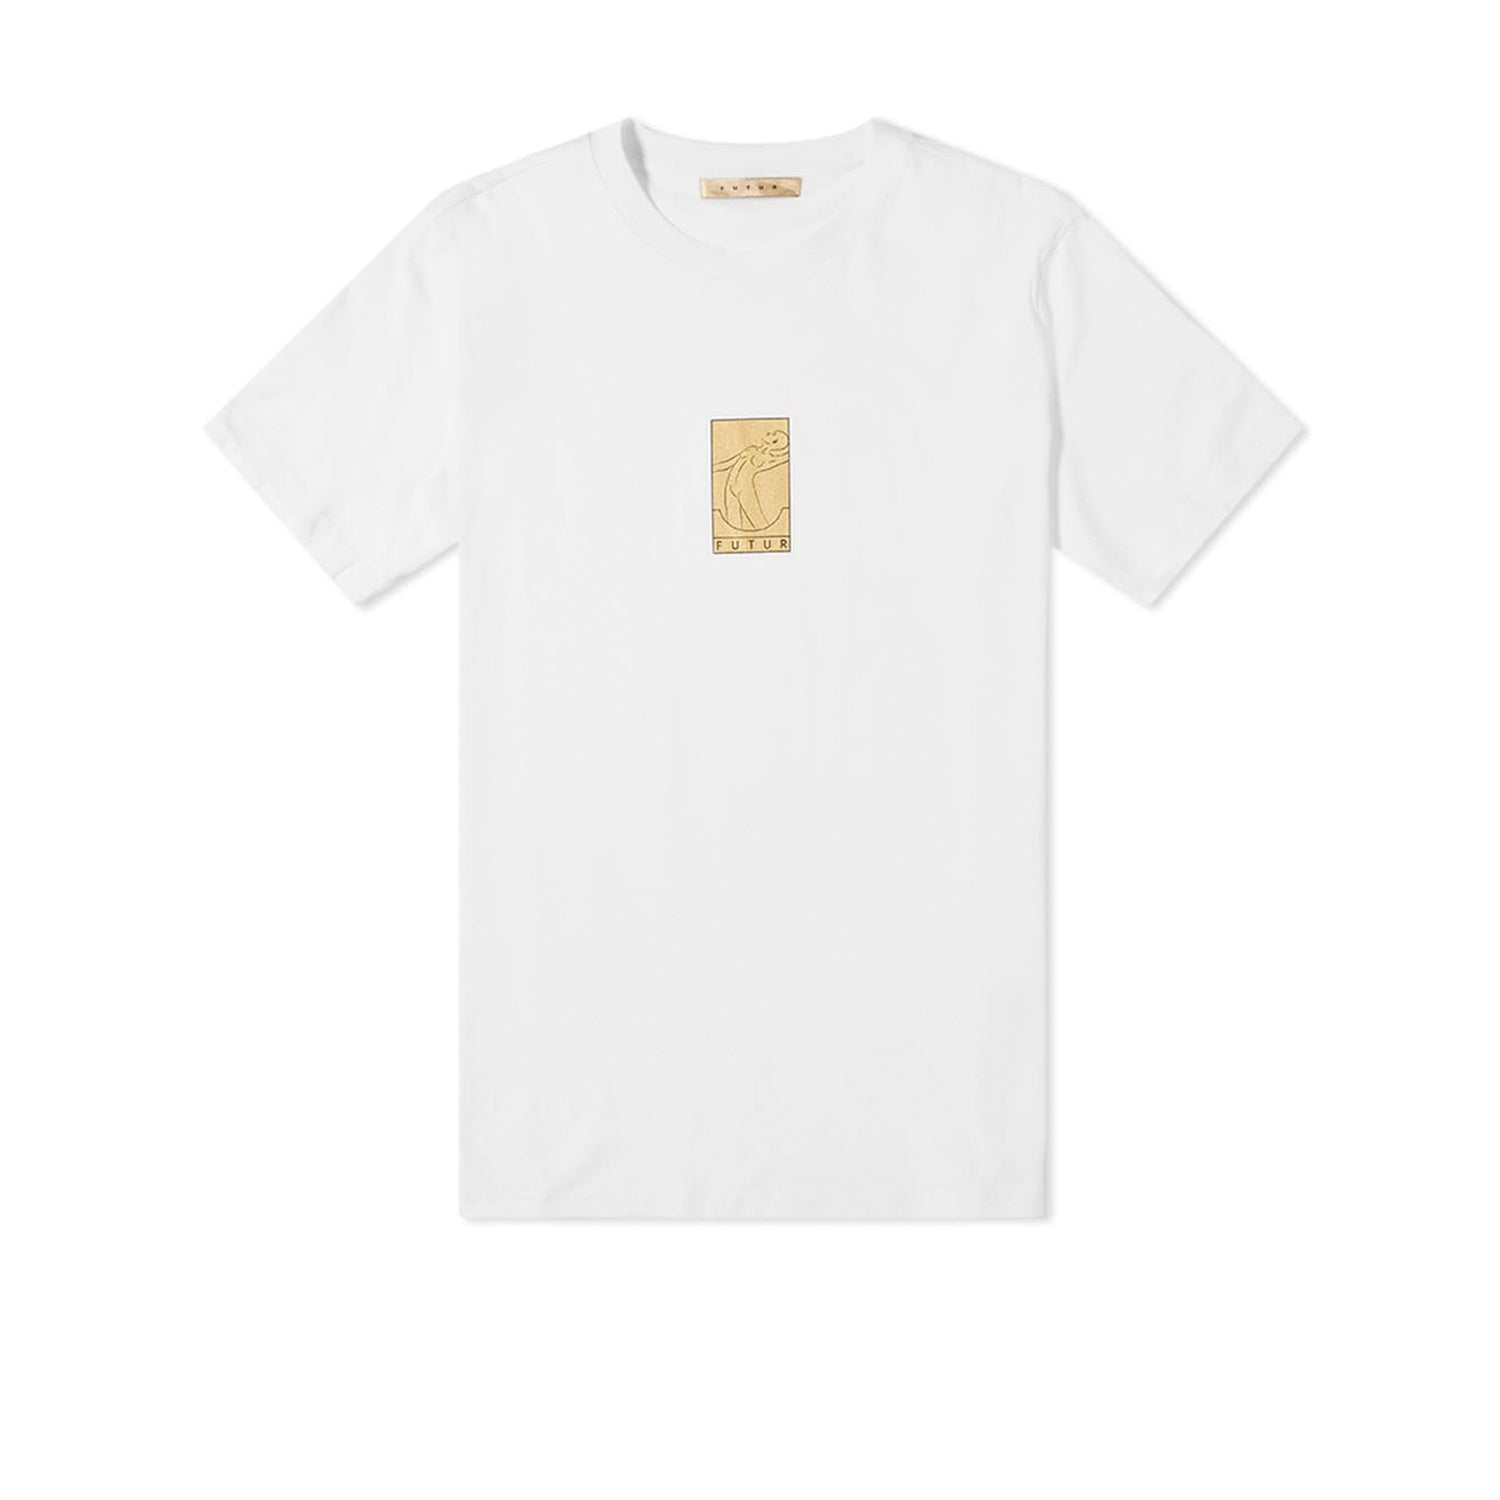 Futur Season 9 Gold Tee - White